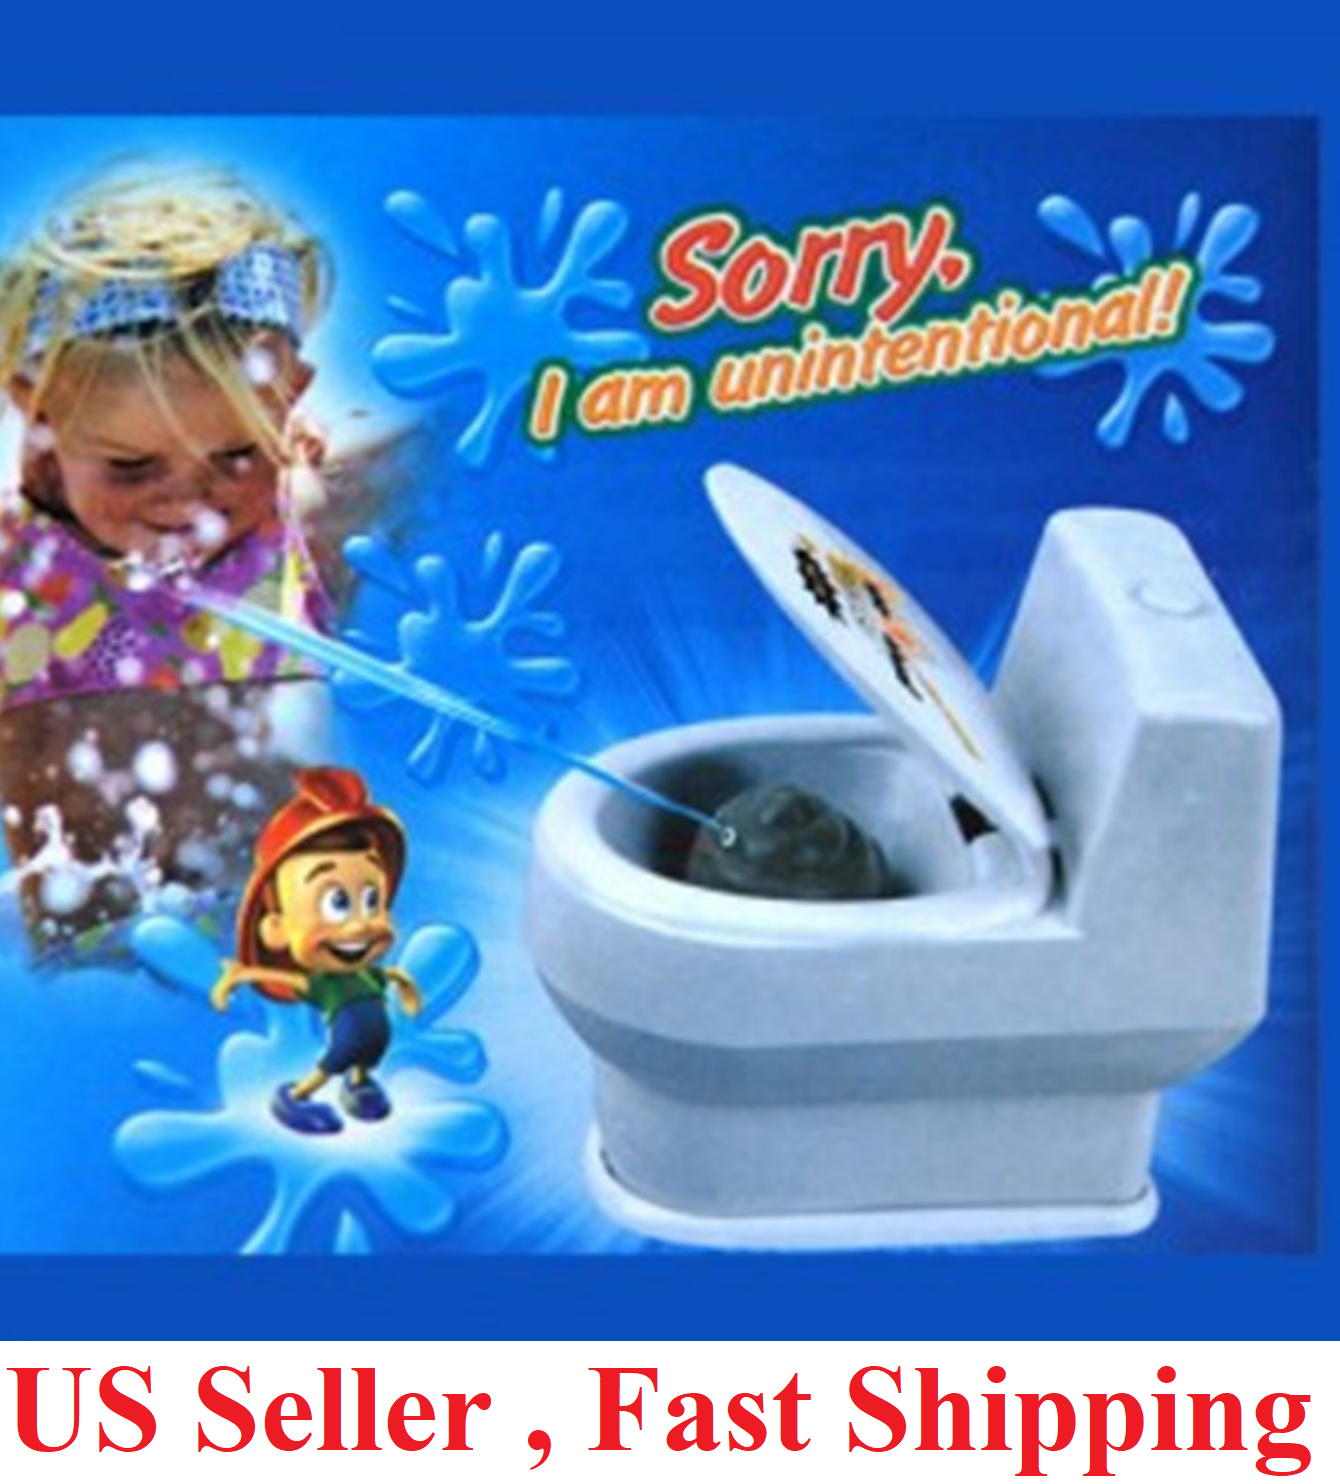 Hilarious Best Prank Gag Gift toilet with 3D Poo Emoji Lift Seat to Spray Water Greeting Cards & Party Supply